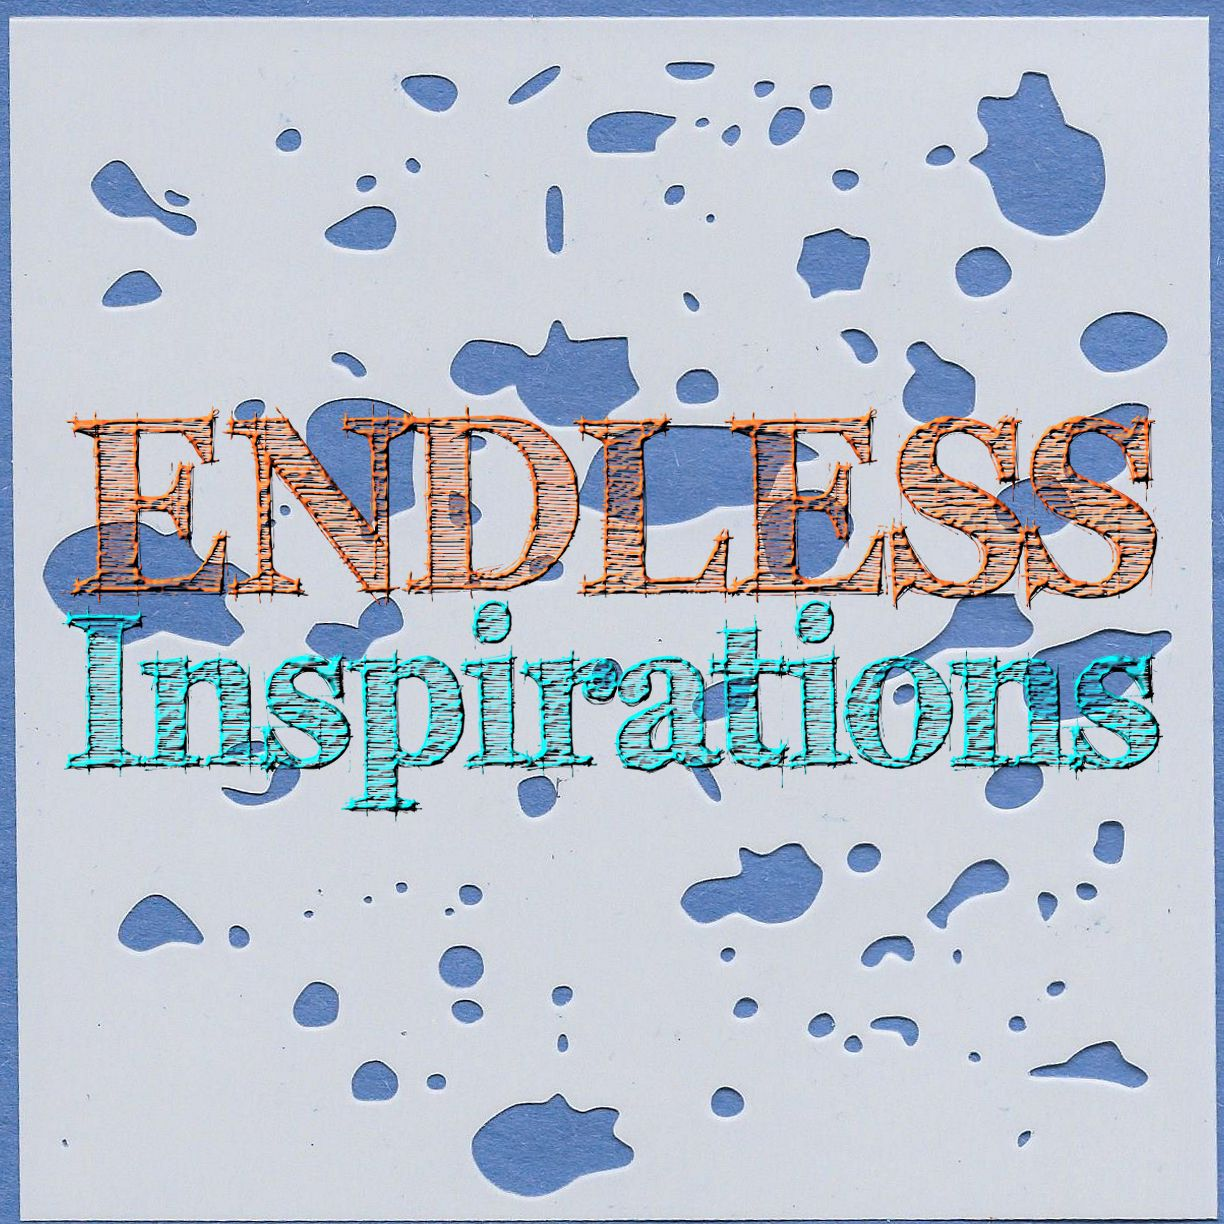 Endless Inspirations Original Stencil, 6 x 6 Inch, My Splatters - Redbird Inspirations